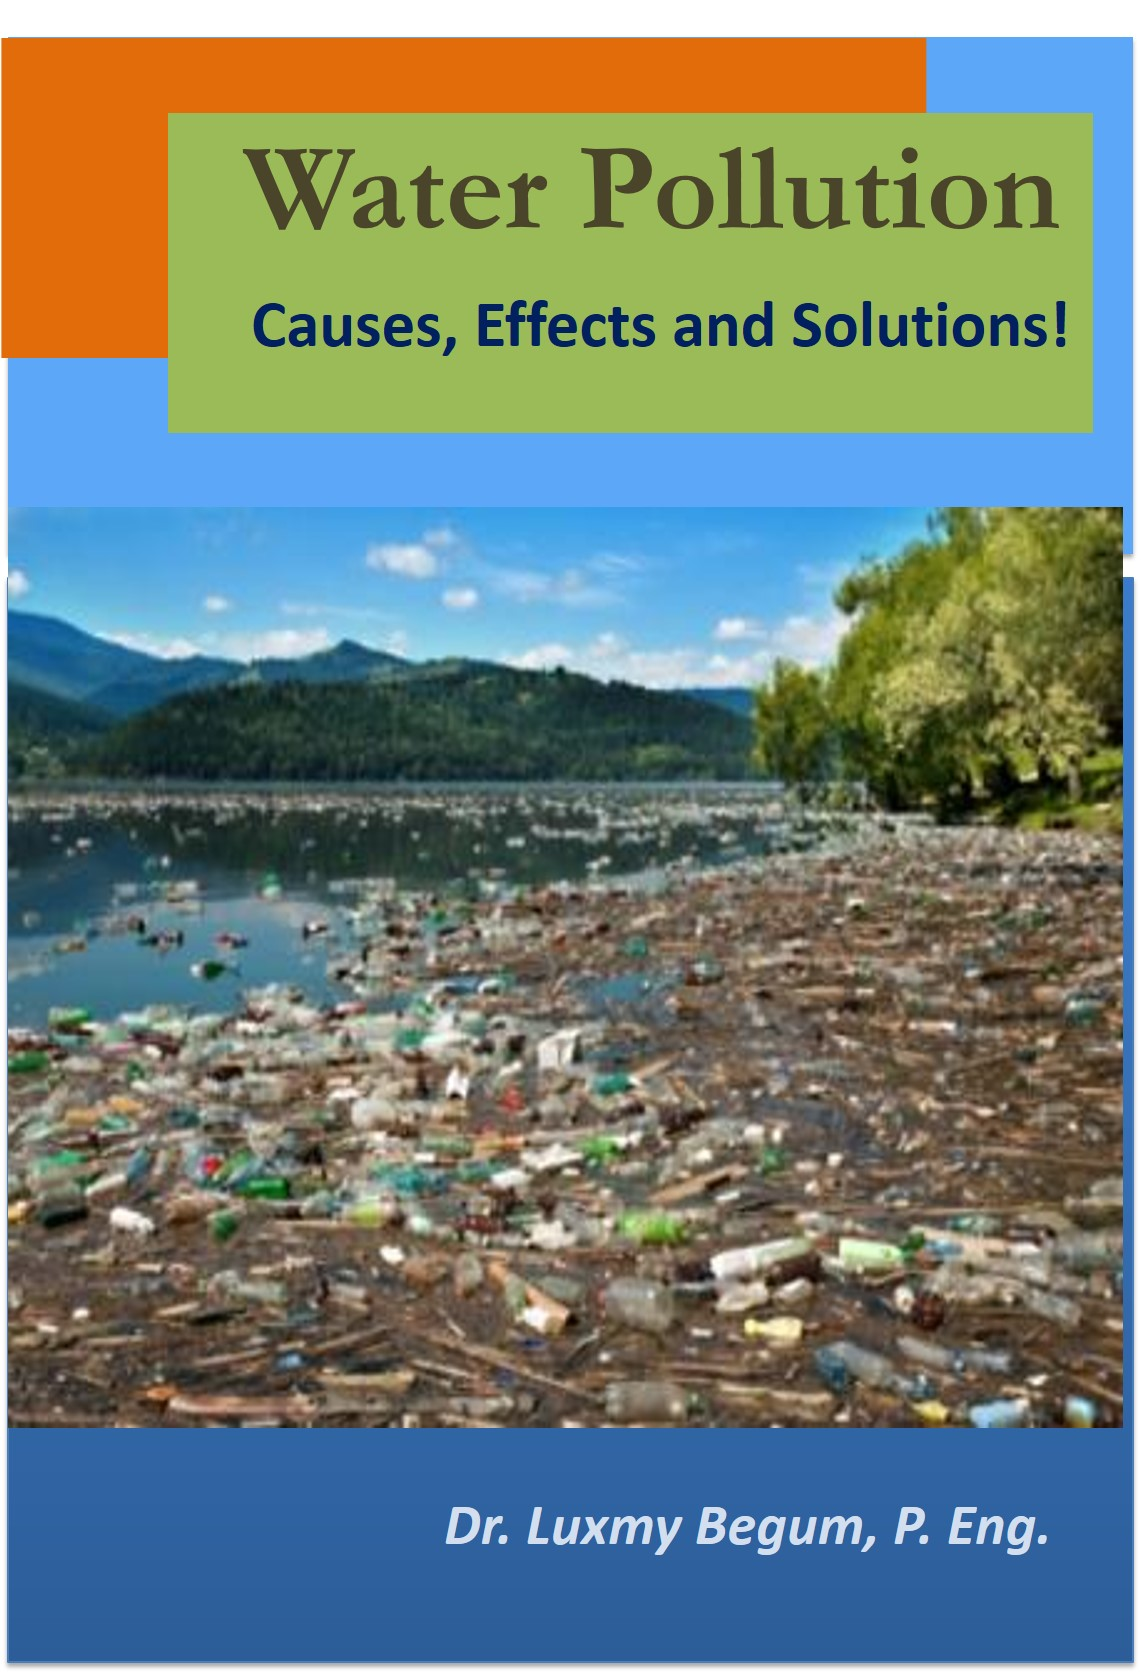 water pollution essay for kids water pollution in essay water  water pollution references cdn 5 99